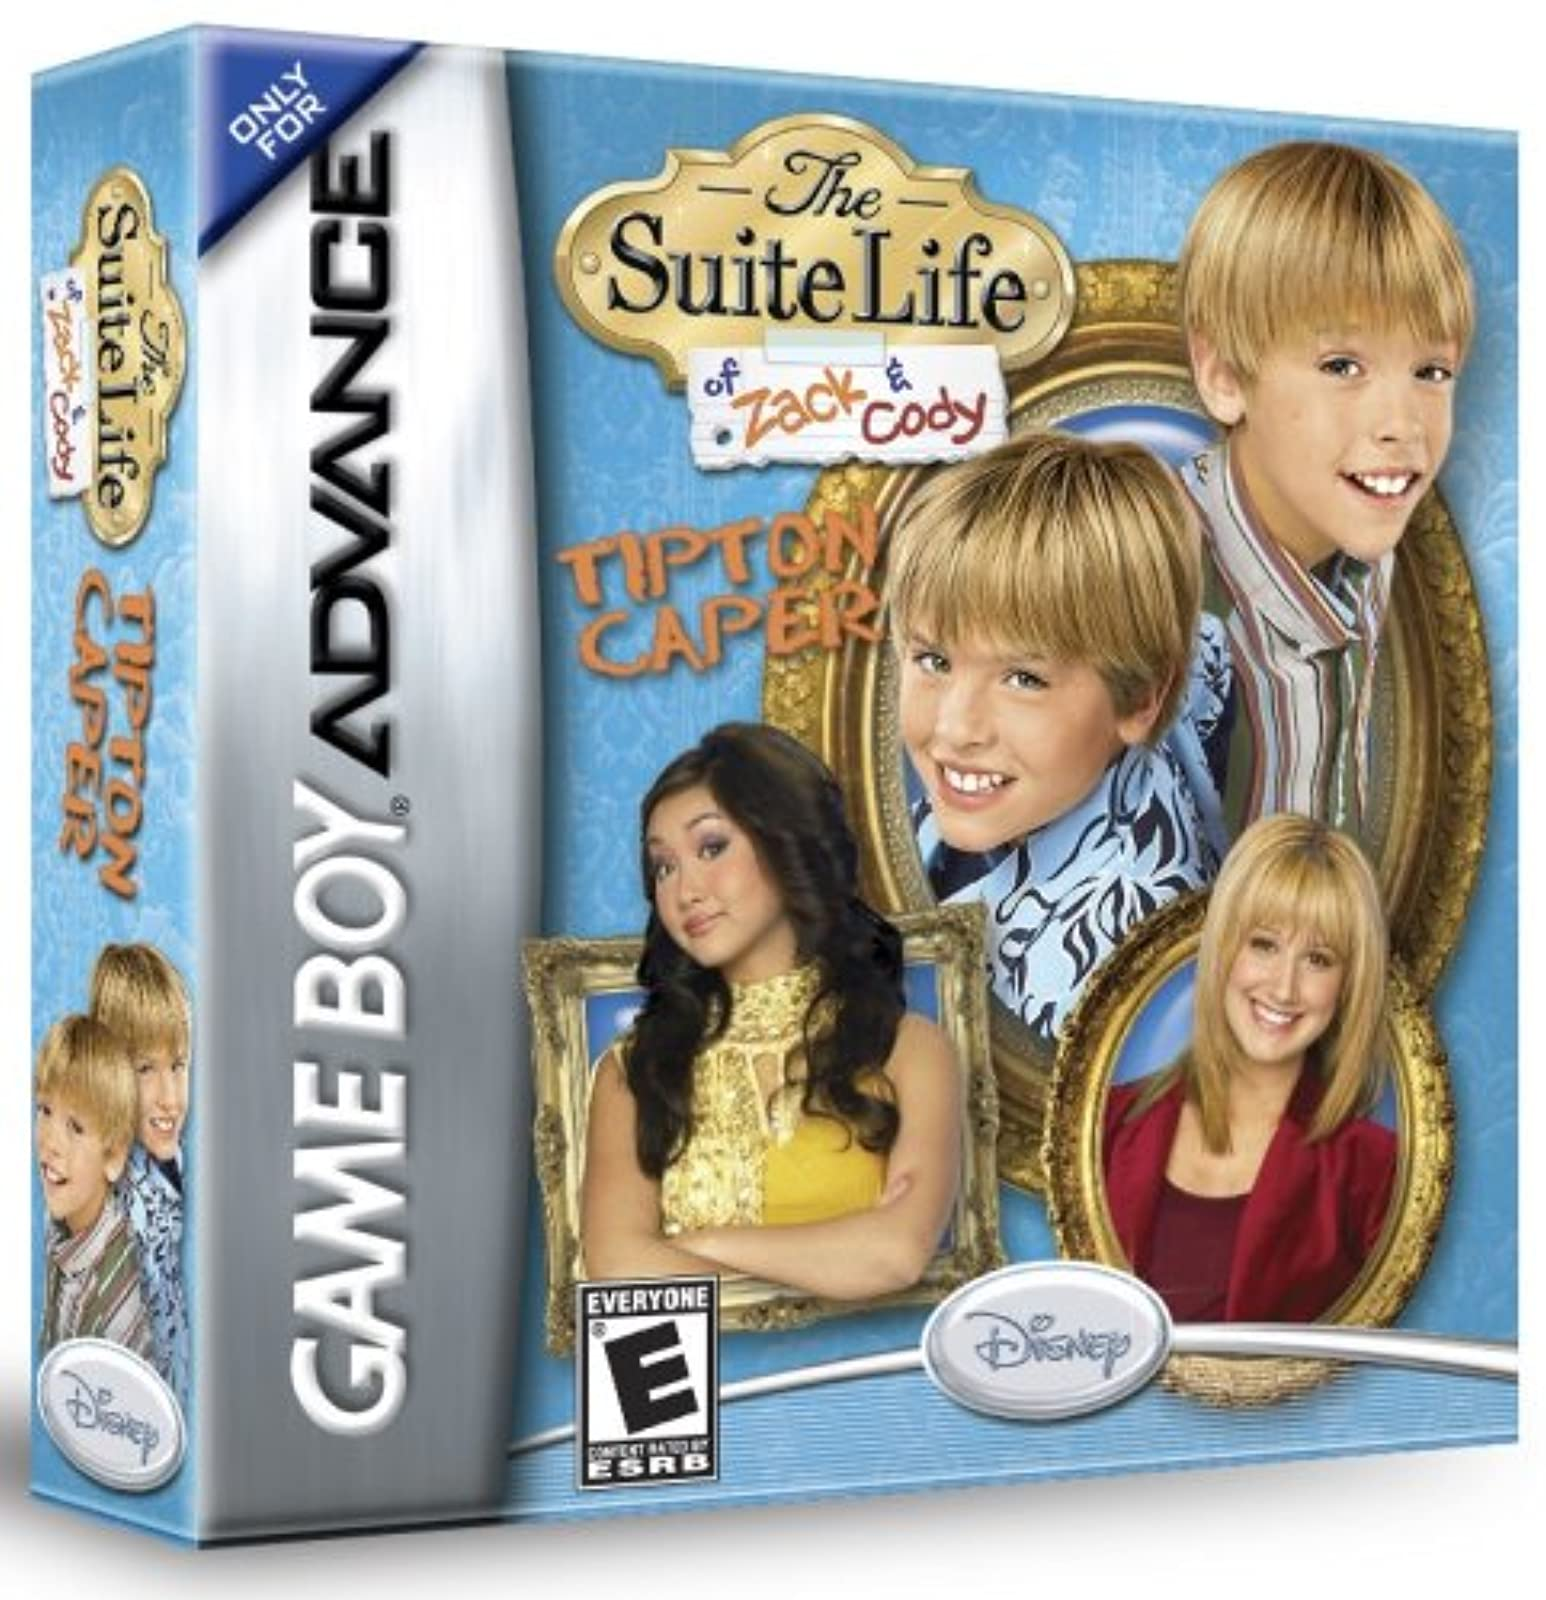 The Suite Life Of Zack & Cody: Tipton Caper Game Boy Advance For GBA